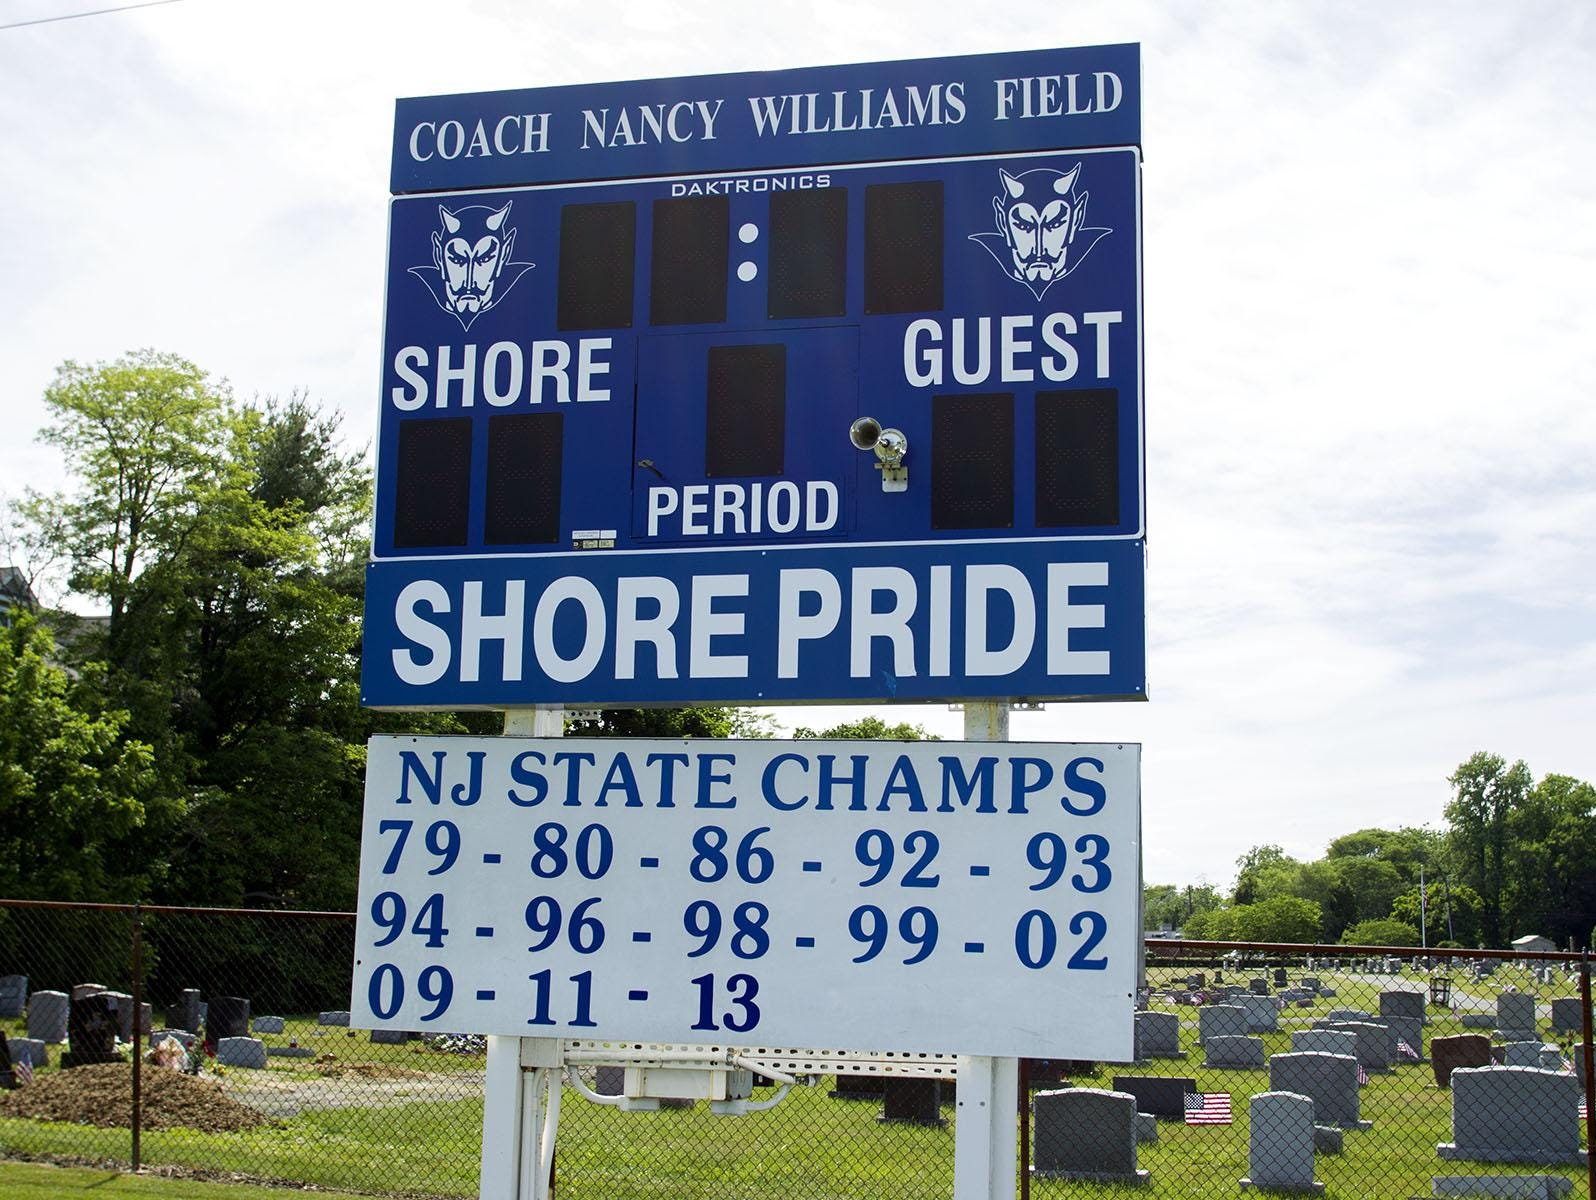 A look at the scoreboard at Shore Regional, which documents the program's decades of success.